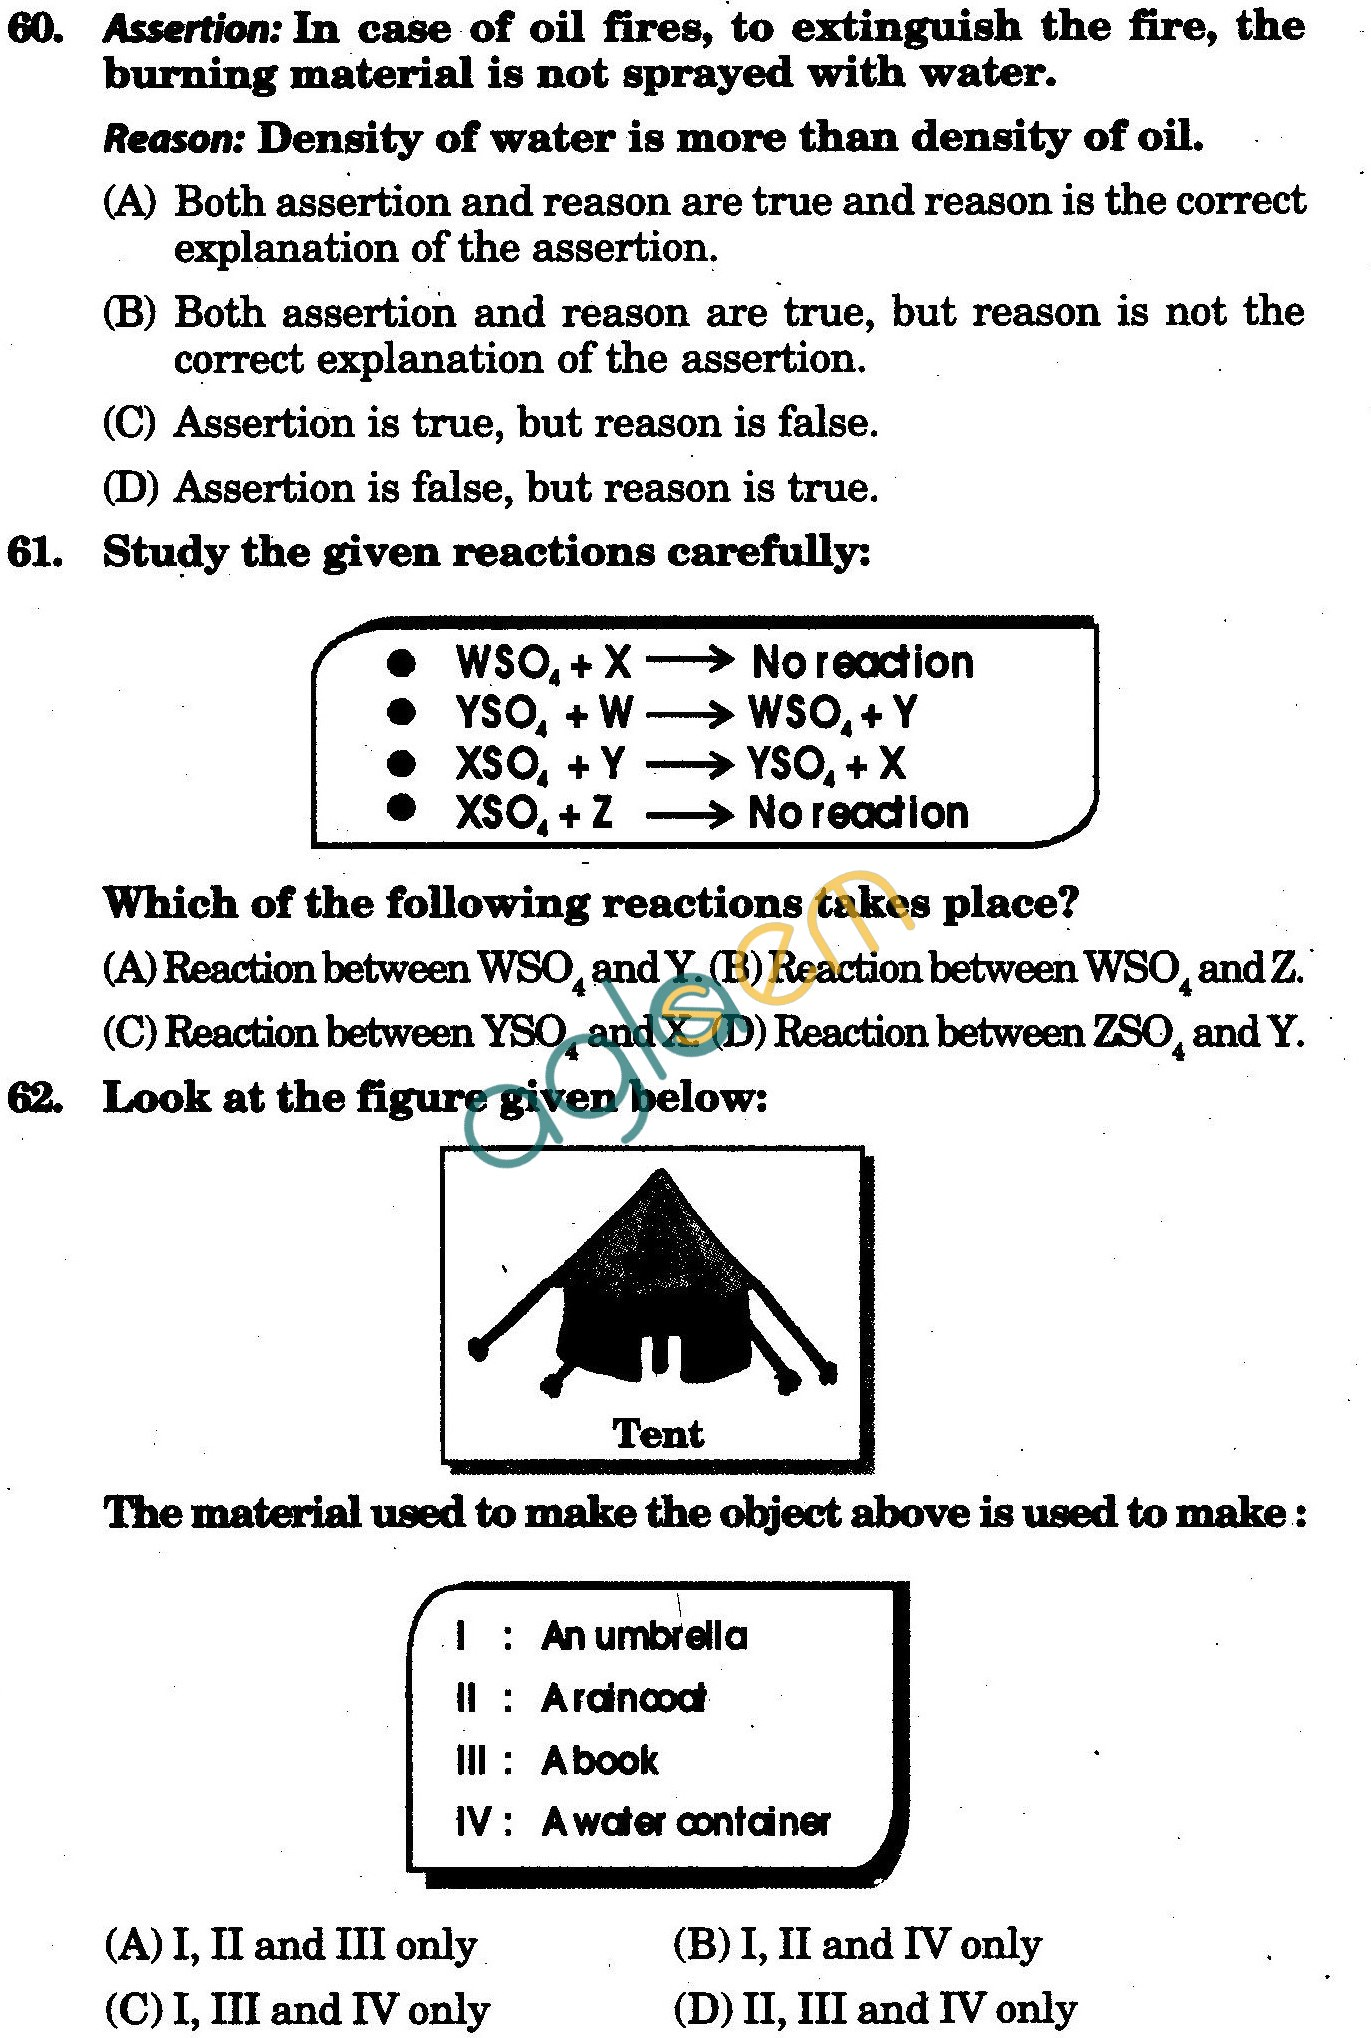 NSTSE 2010: Class VIII Question Paper with Answers - Chemistry